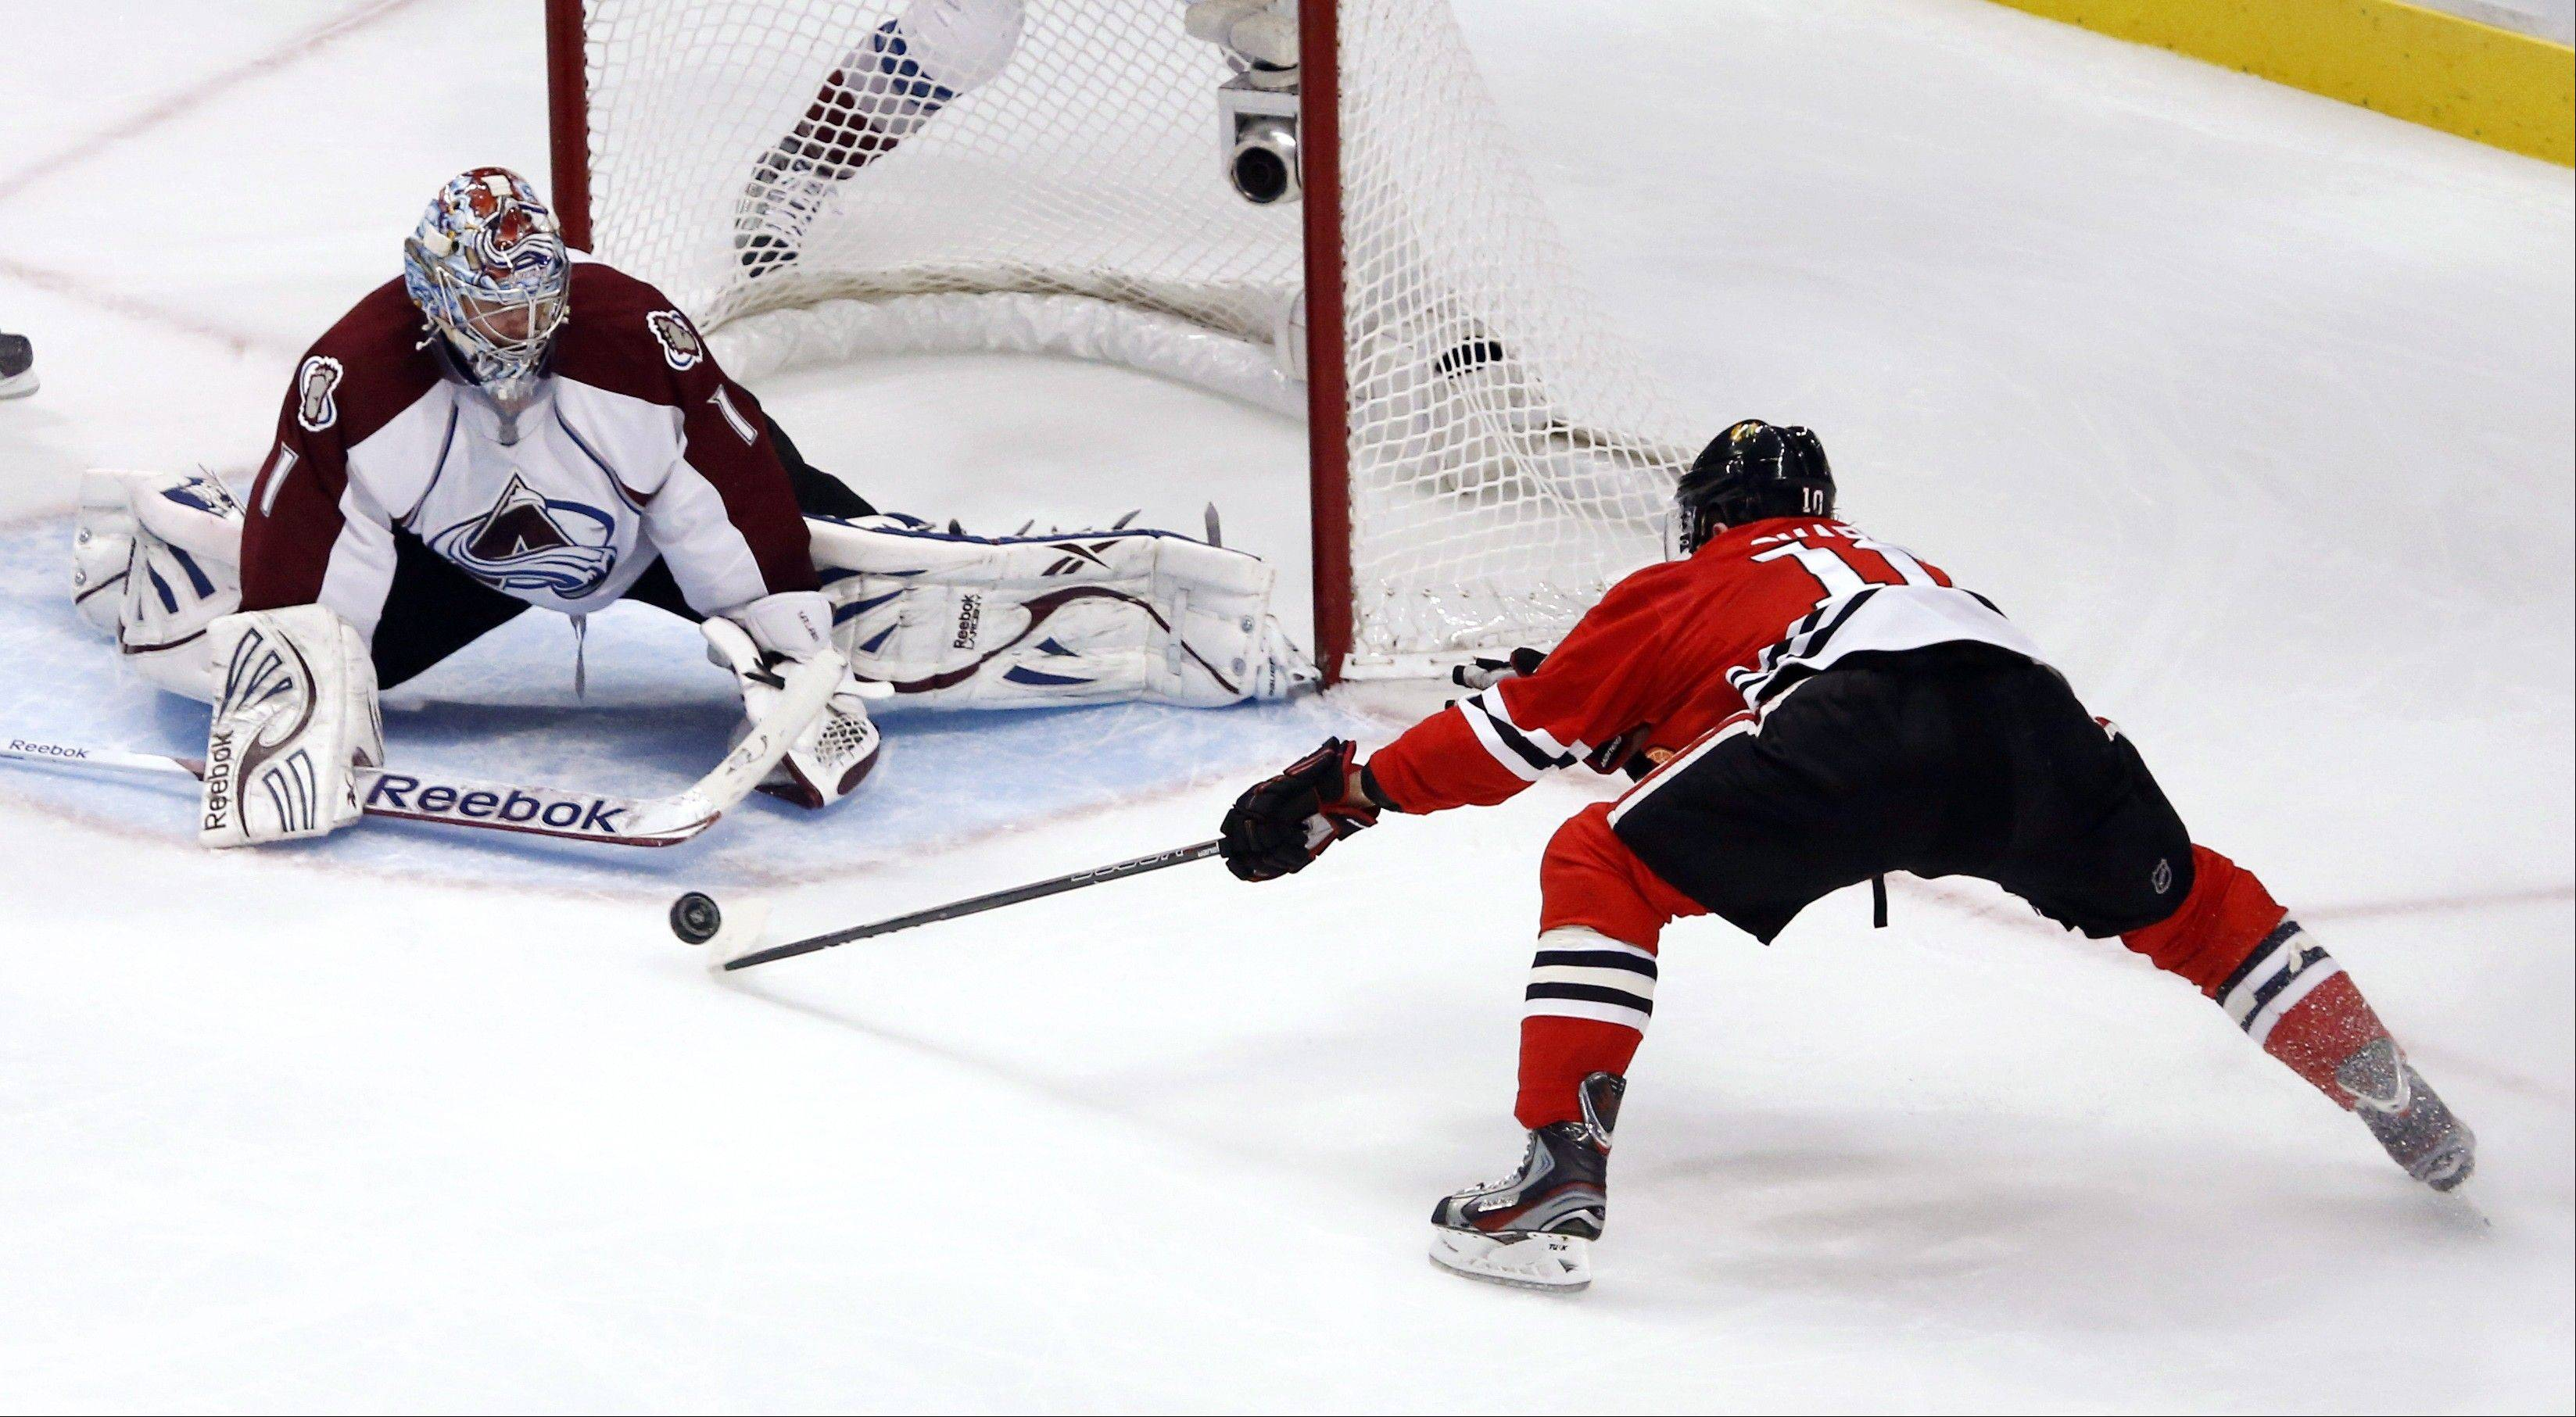 Chicago Blackhawks center Patrick Sharp, right, is unable to get the rebound off a shot on Colorado Avalanche goalie Semyon Varlamov during the second period.